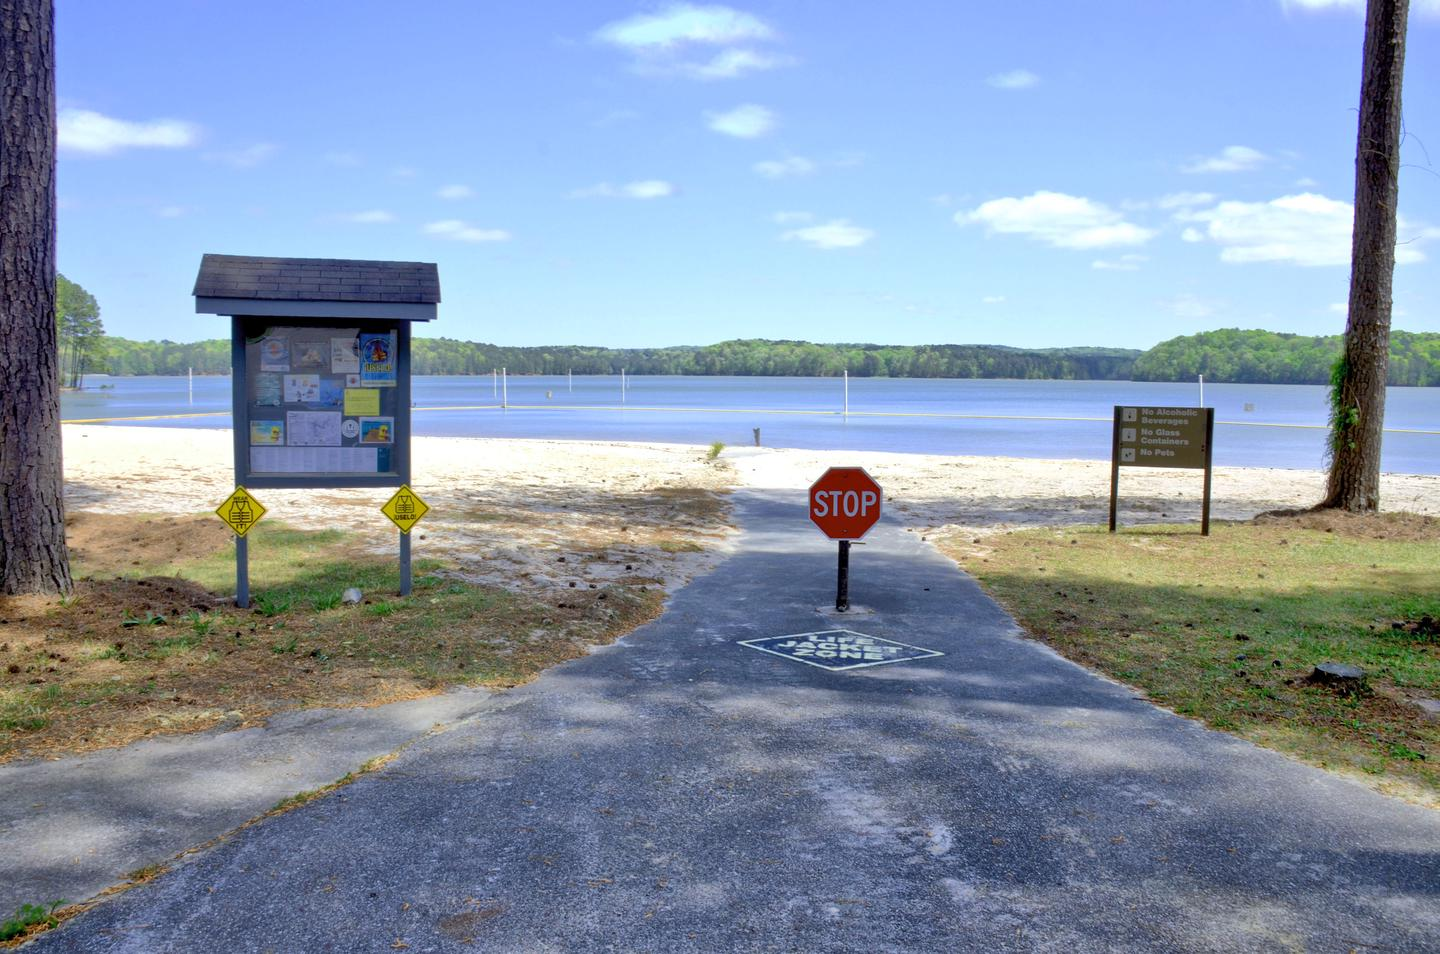 Sweetwater Day Use Beach ADA AccessSweetwater Day Use Beach ADA Access.